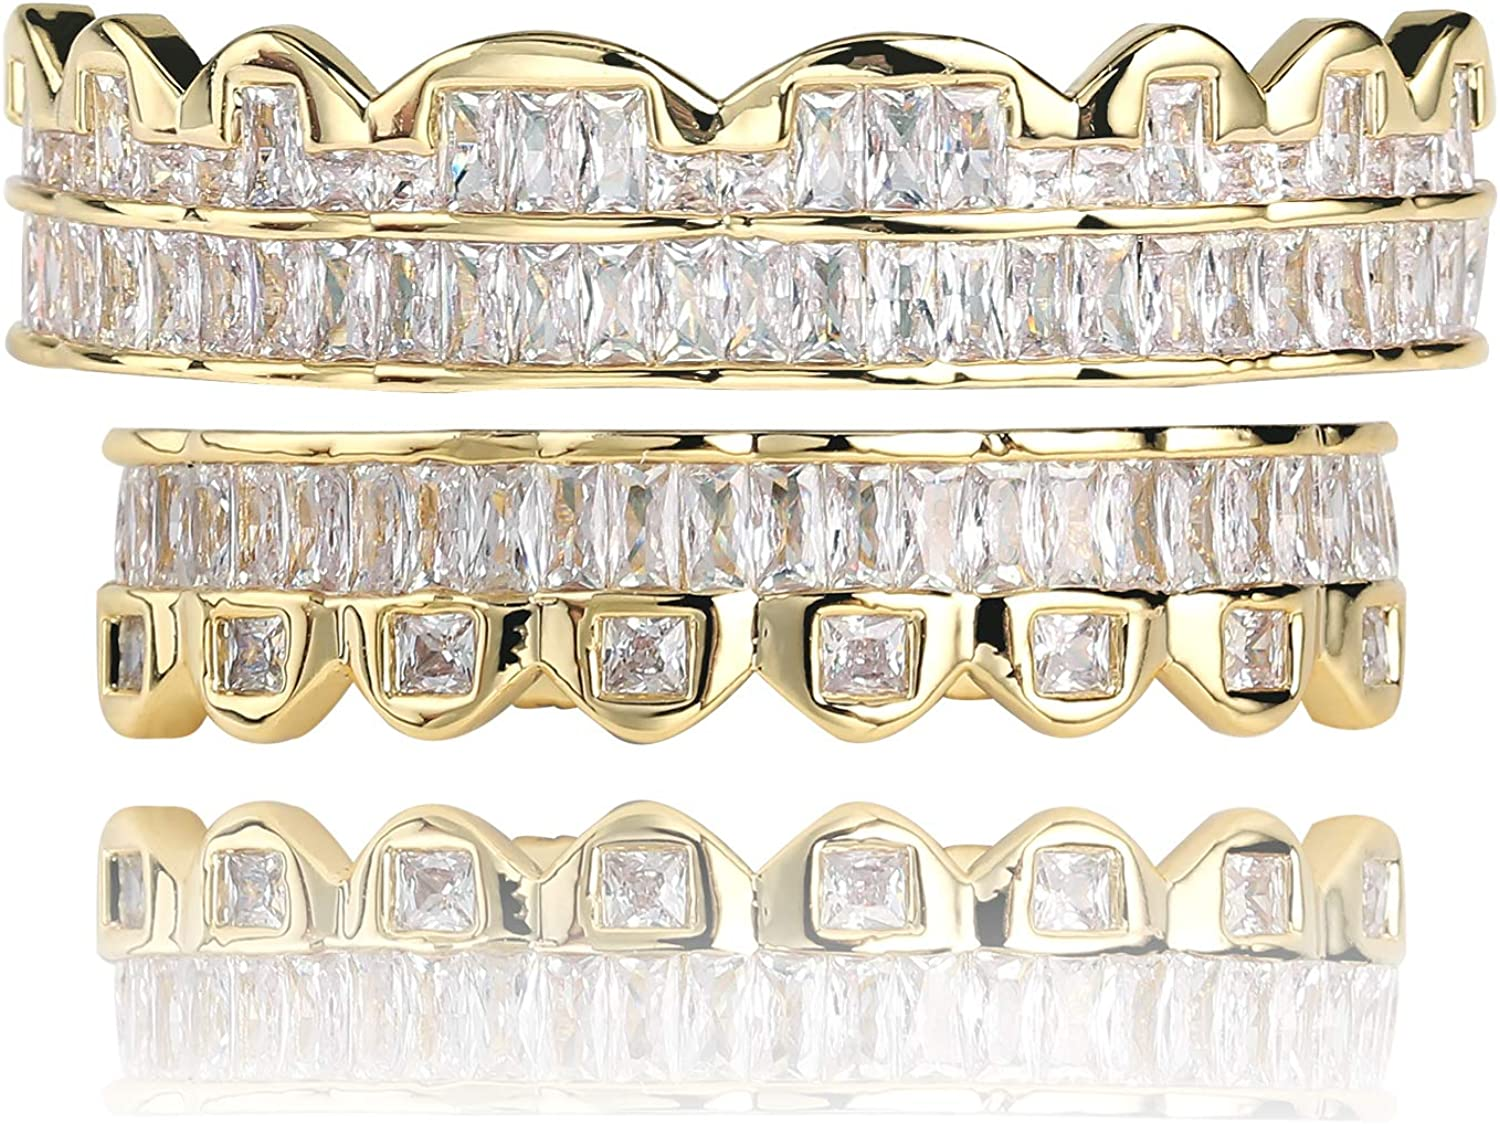 TOPGRILLZ 14K Gold Plated Custom Baguette Iced Out Top and Bottom Grills for Your Teeth Hip Hop Men